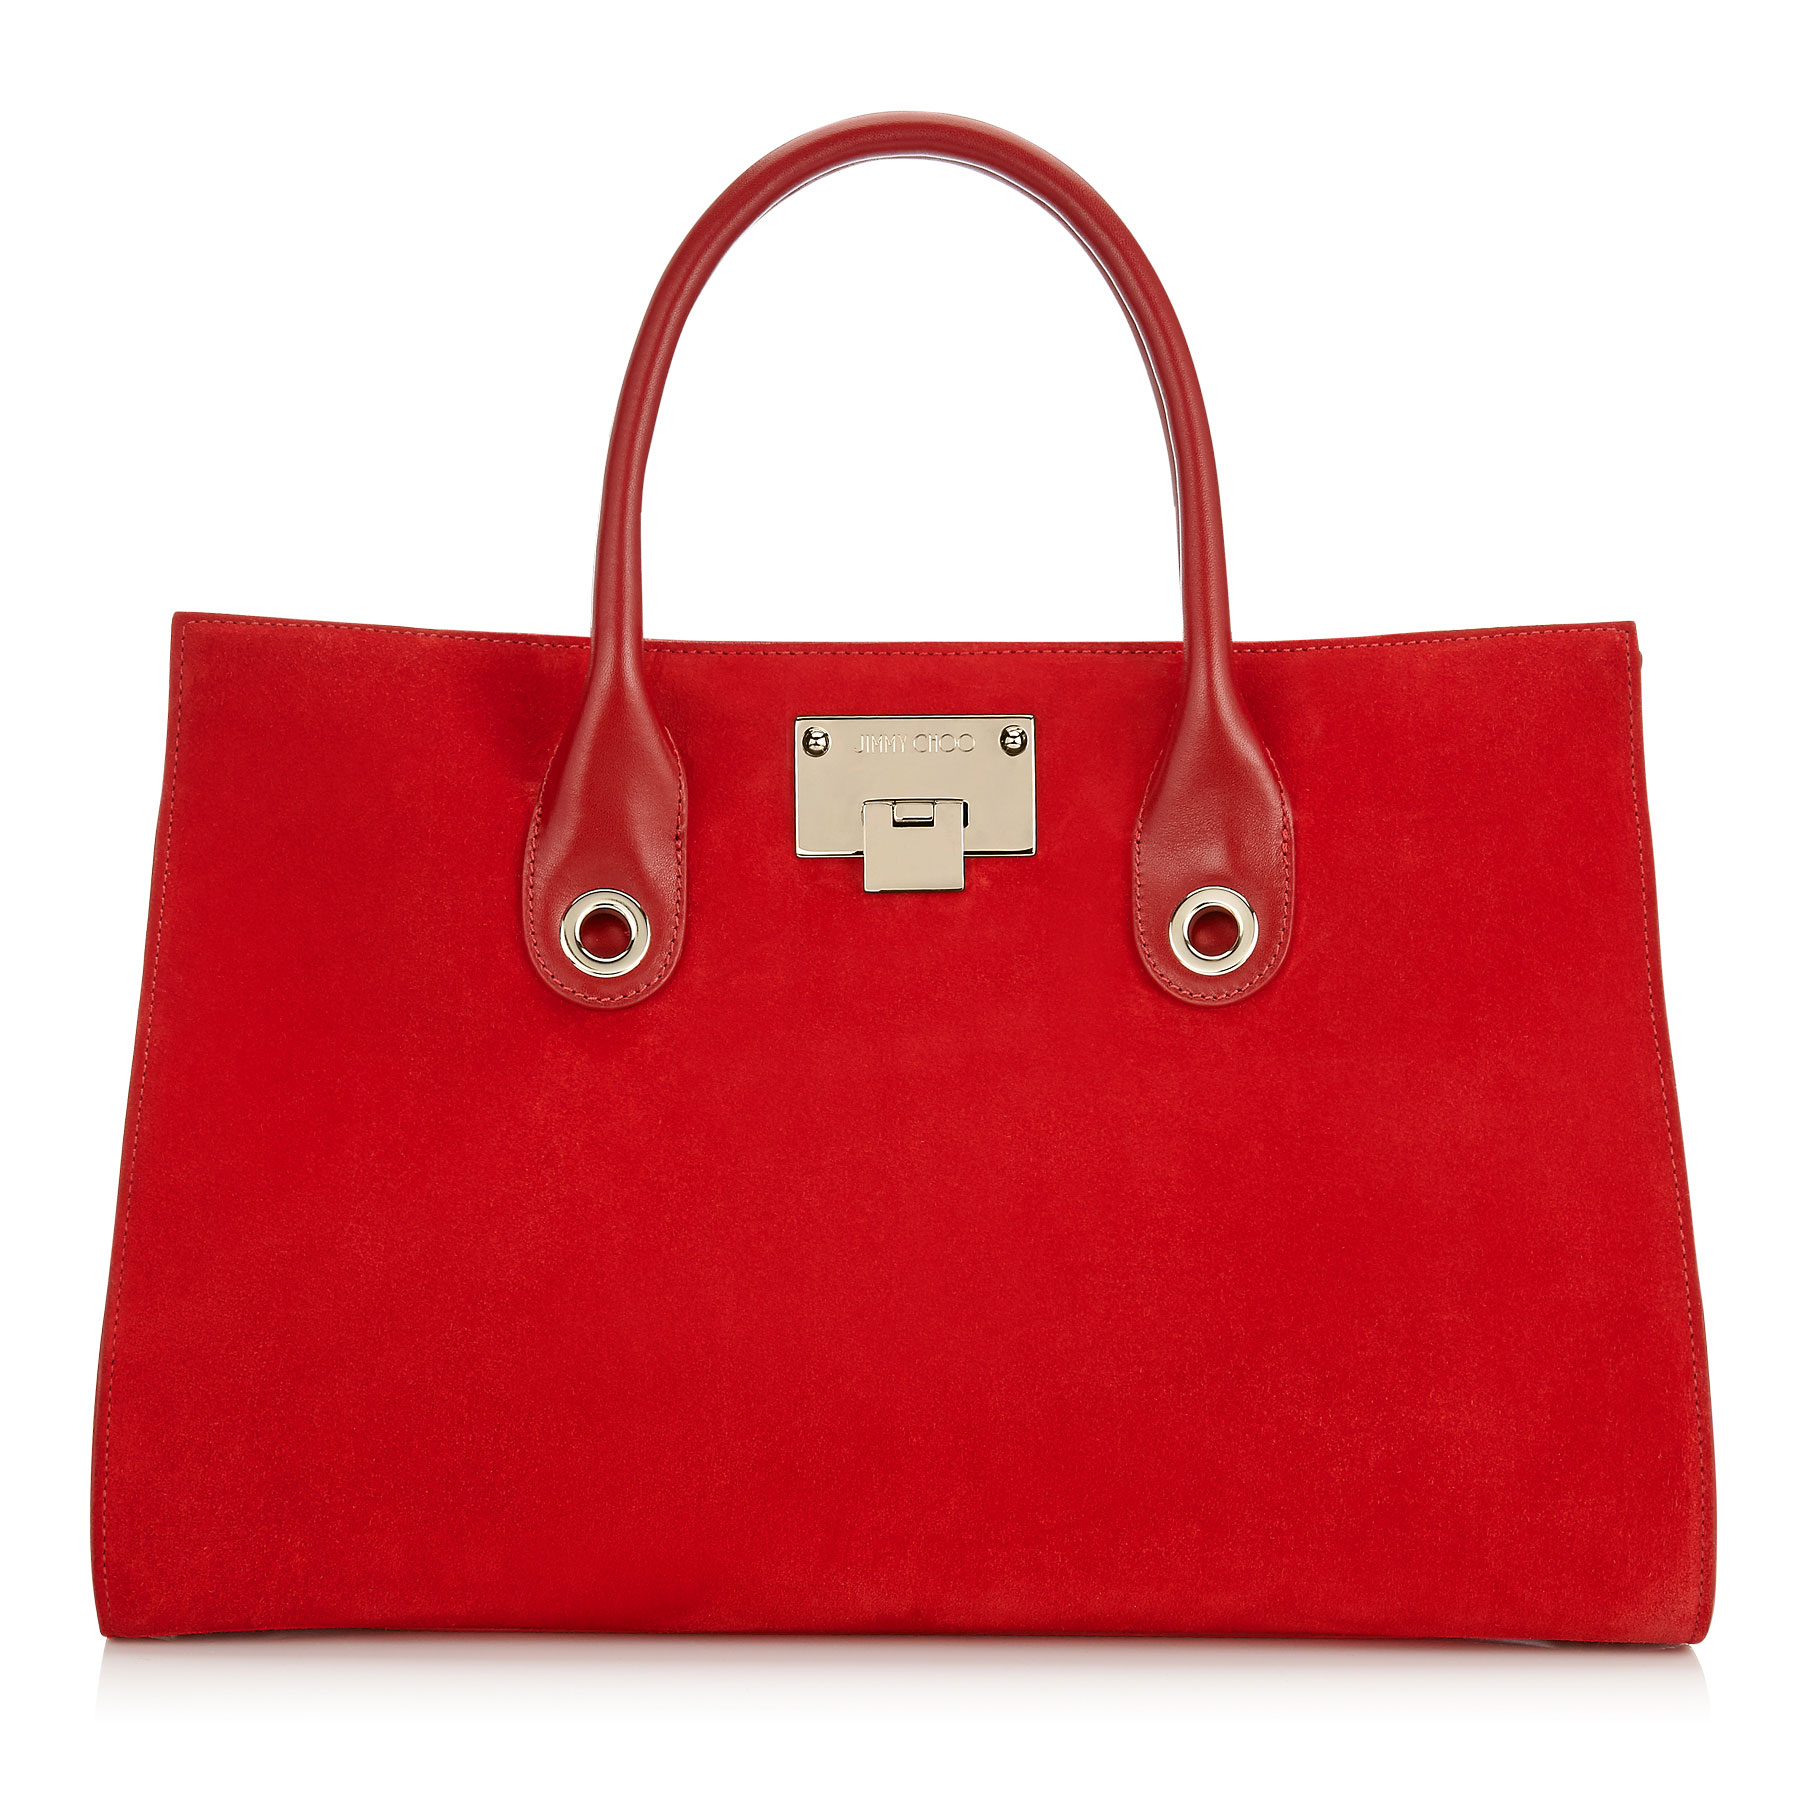 RILEY Red Suede Tote Bag